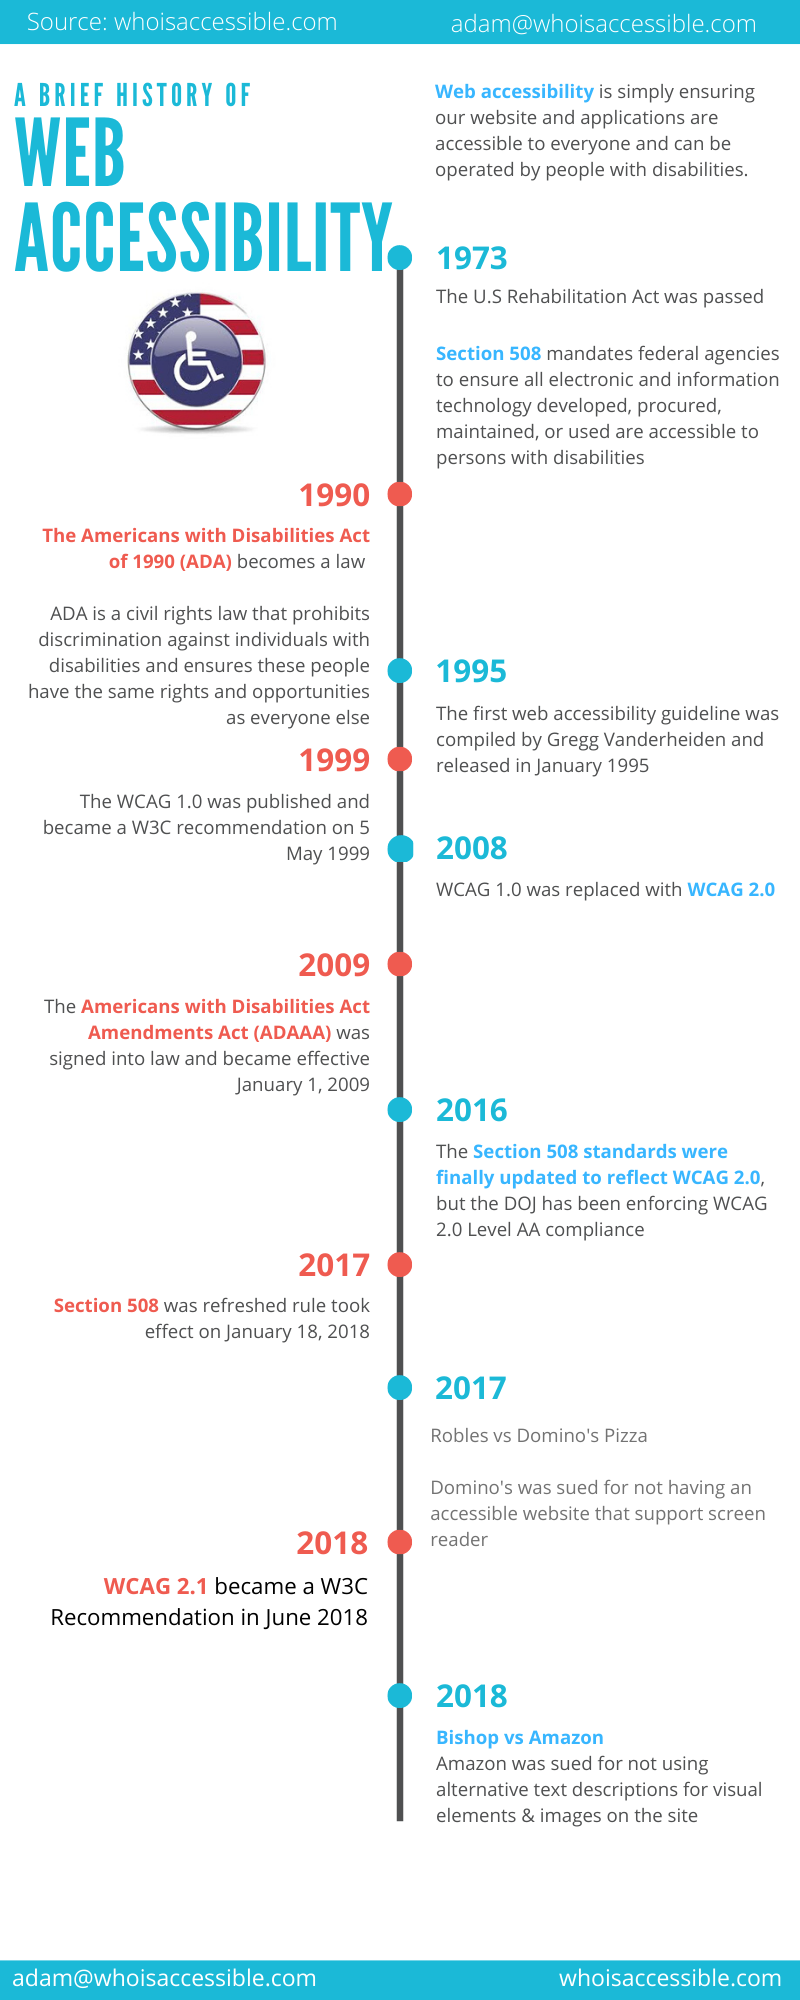 A Brief History of Web Accessibility History Timeline #infographic